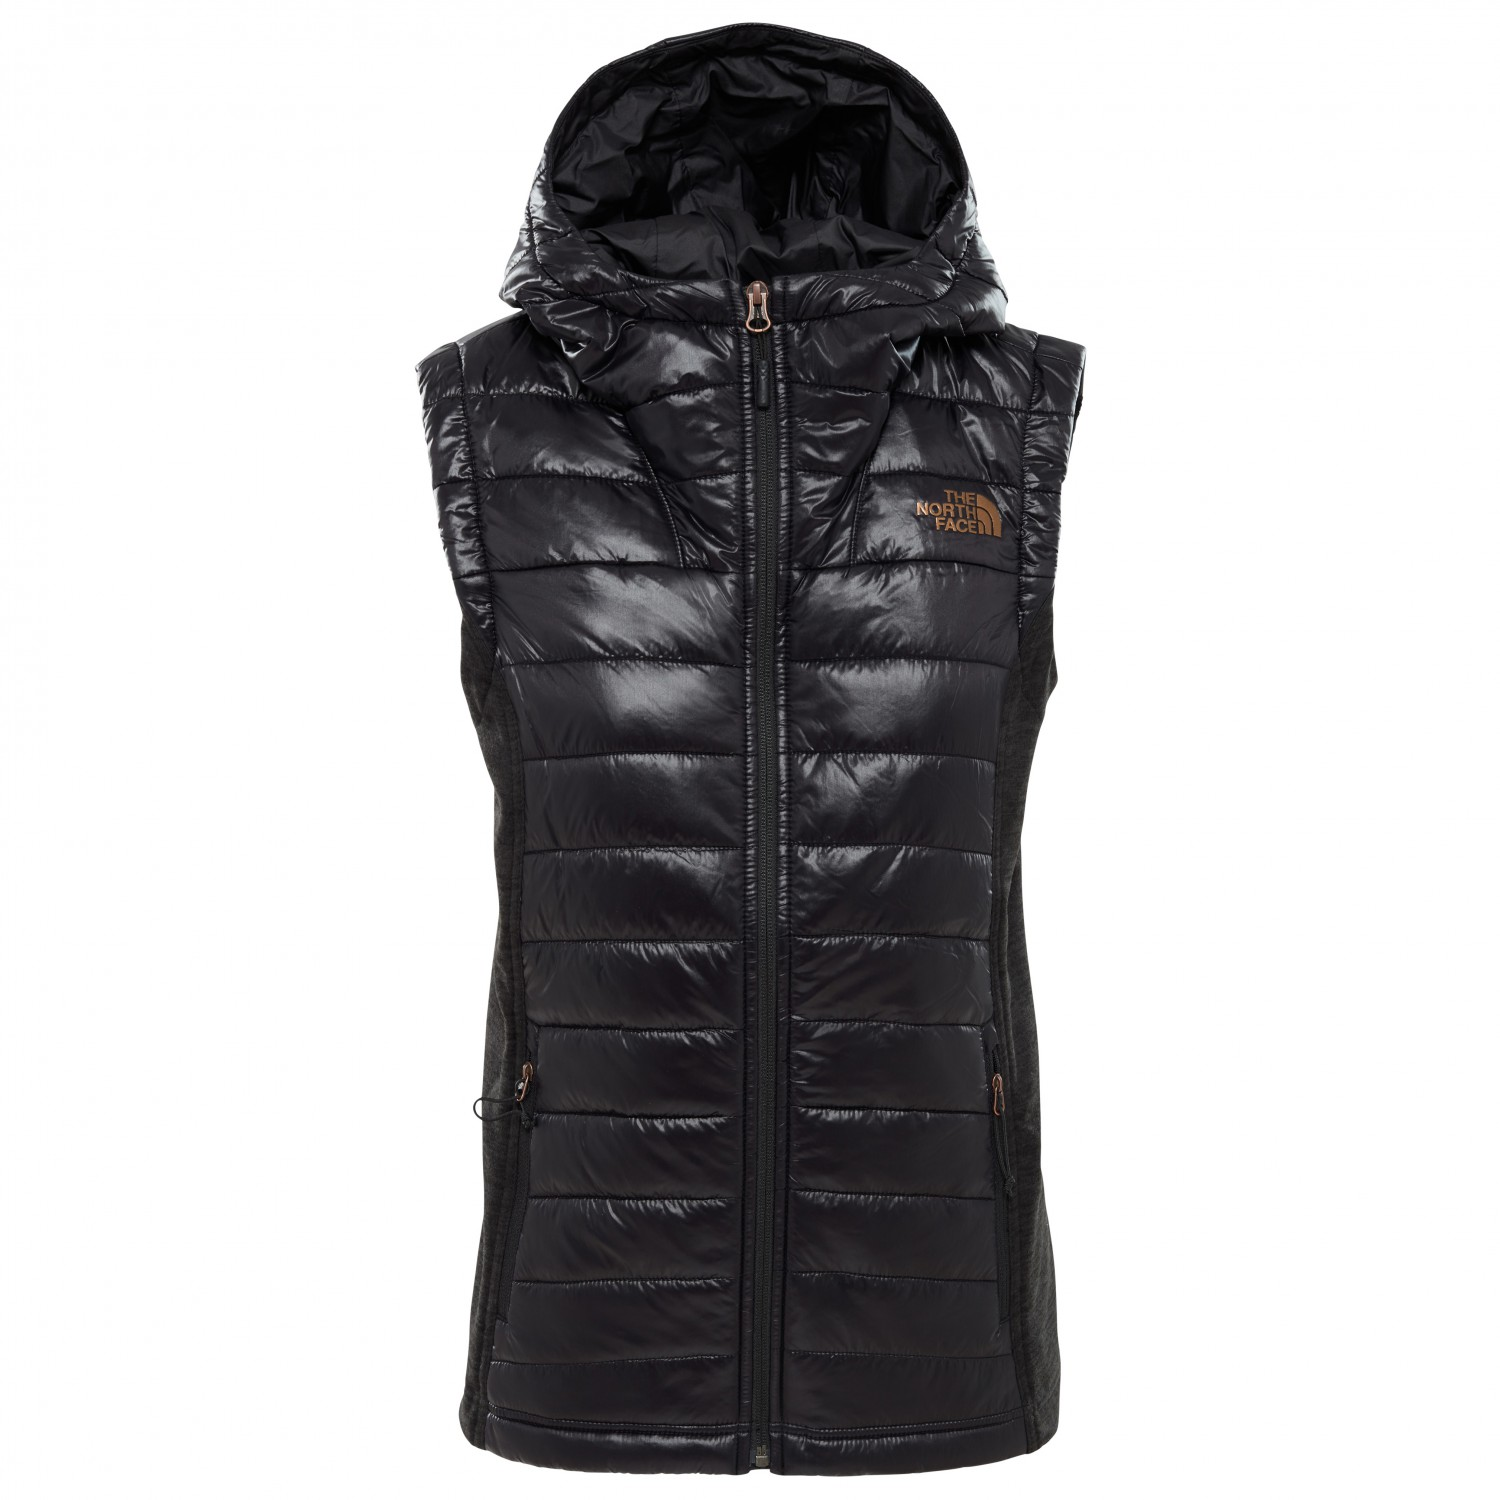 4a84b1fbd The North Face Mashup 2 Vest - Synthetic Vest Women's | Buy online ...